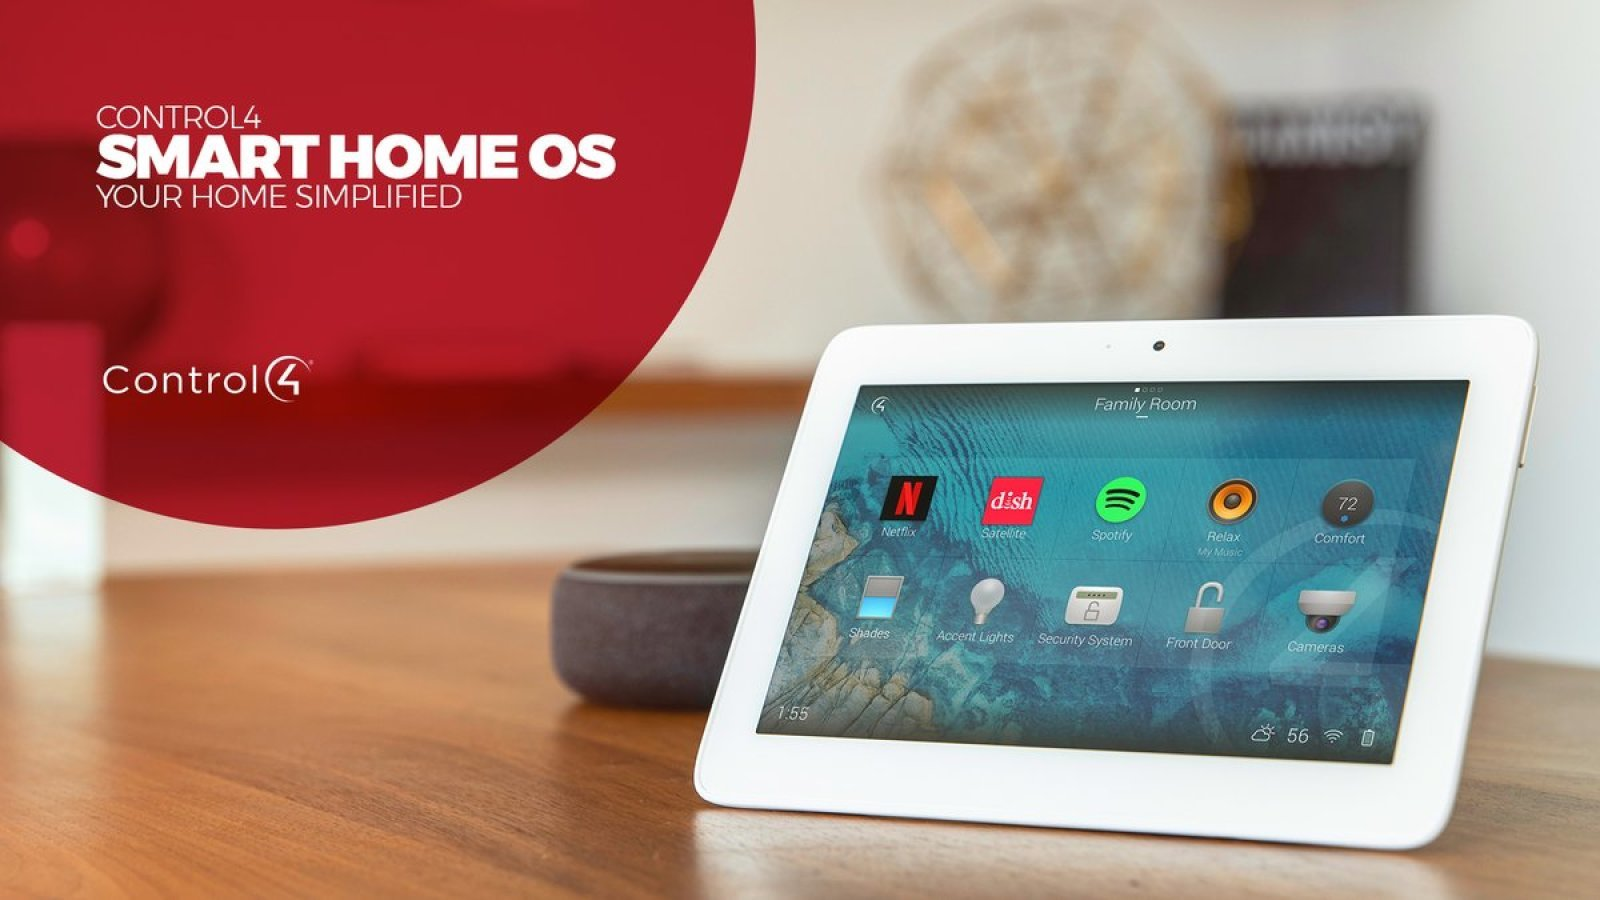 Control4 Smart Home Operating System